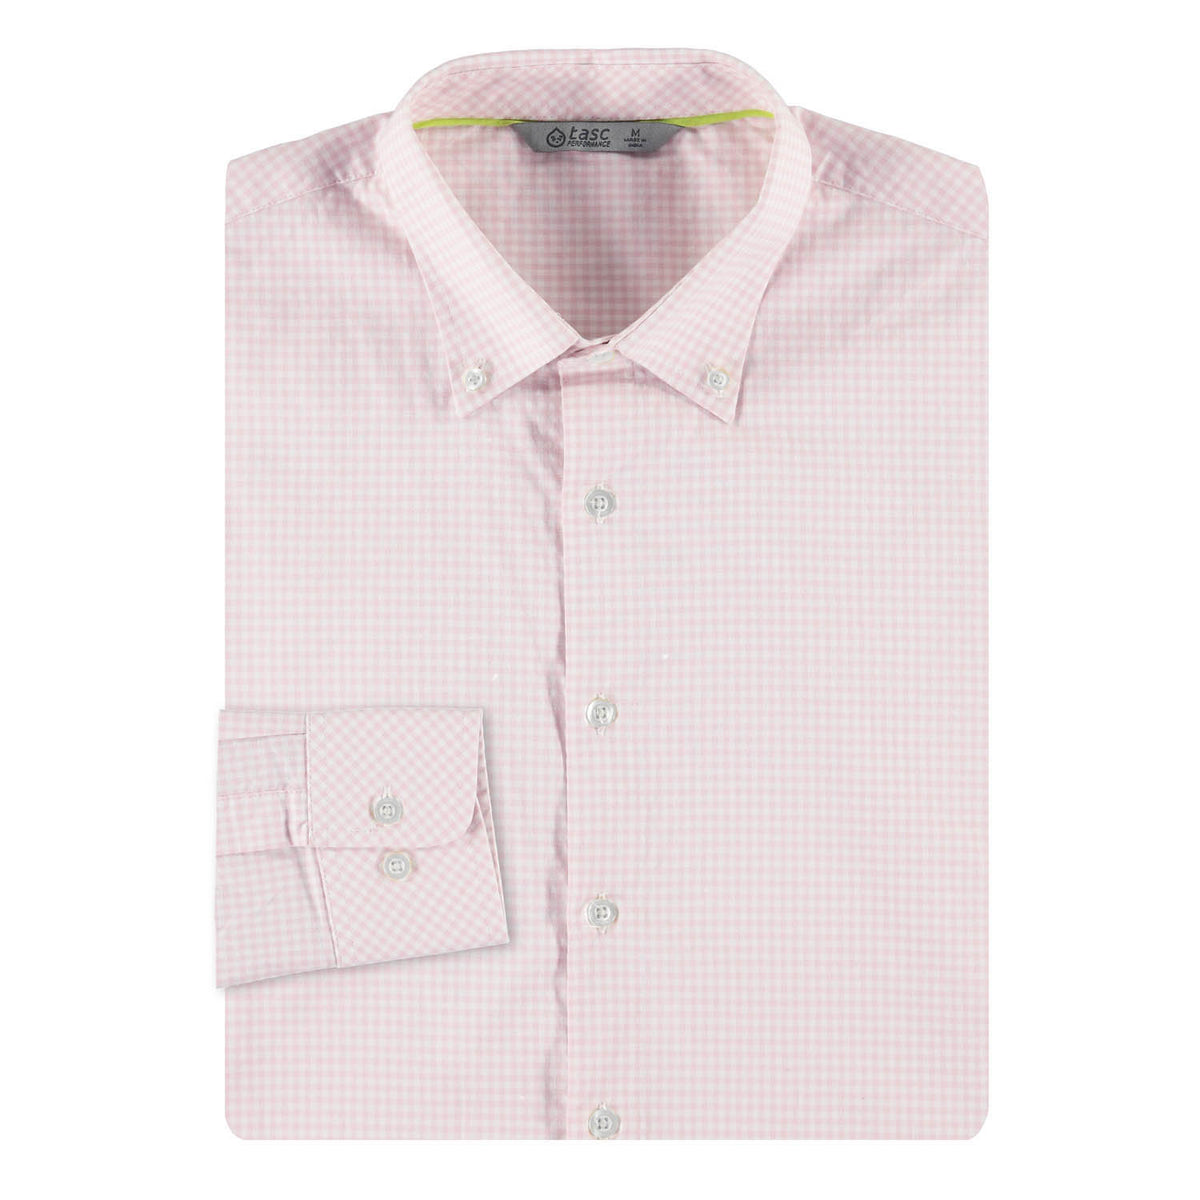 Performance Comfort Gingham